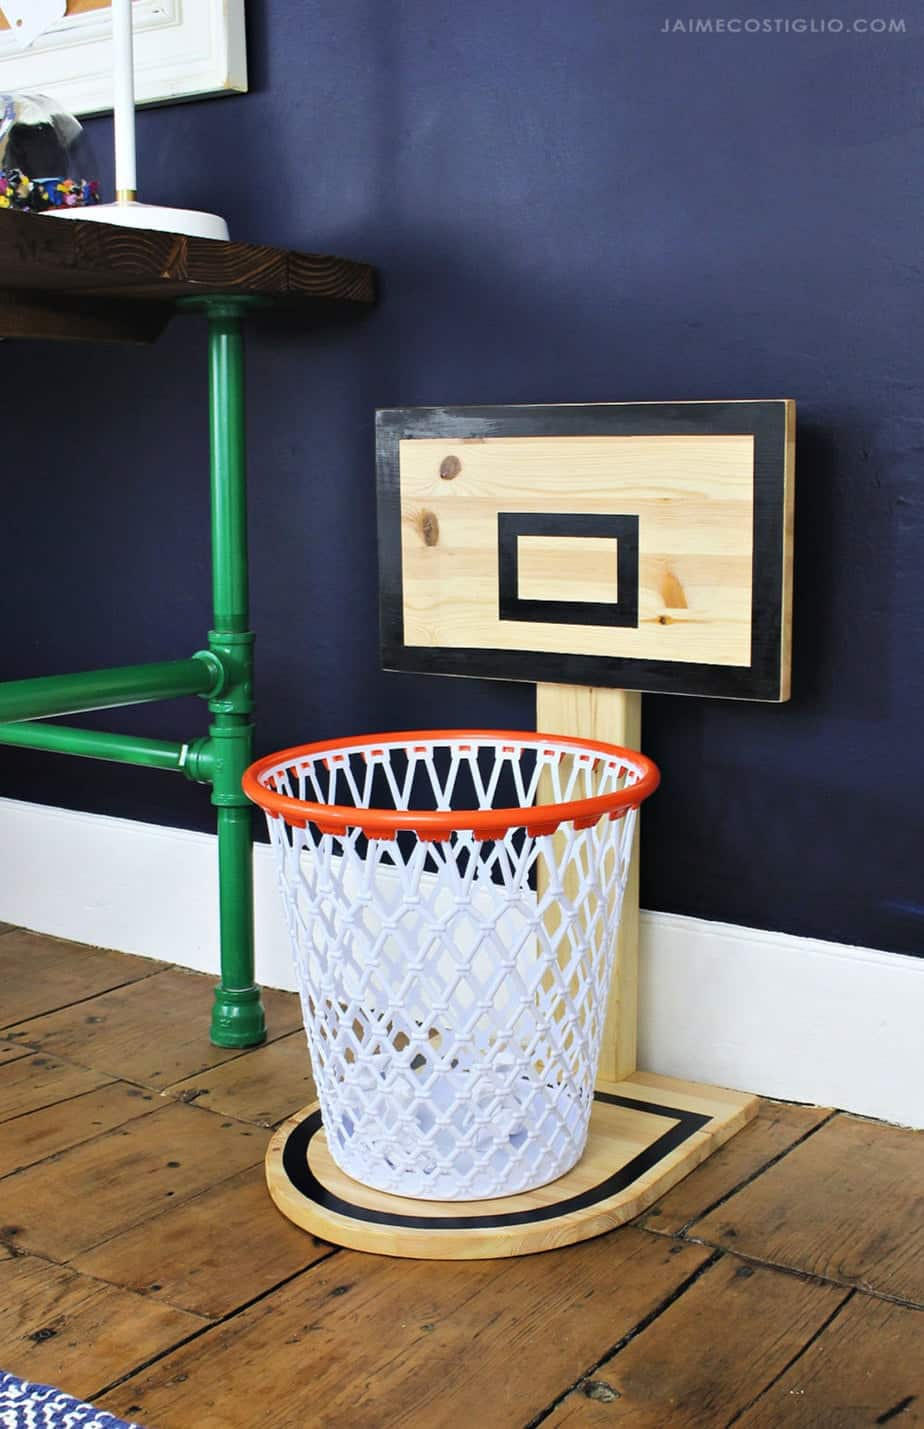 Diy basketball hoop trash can